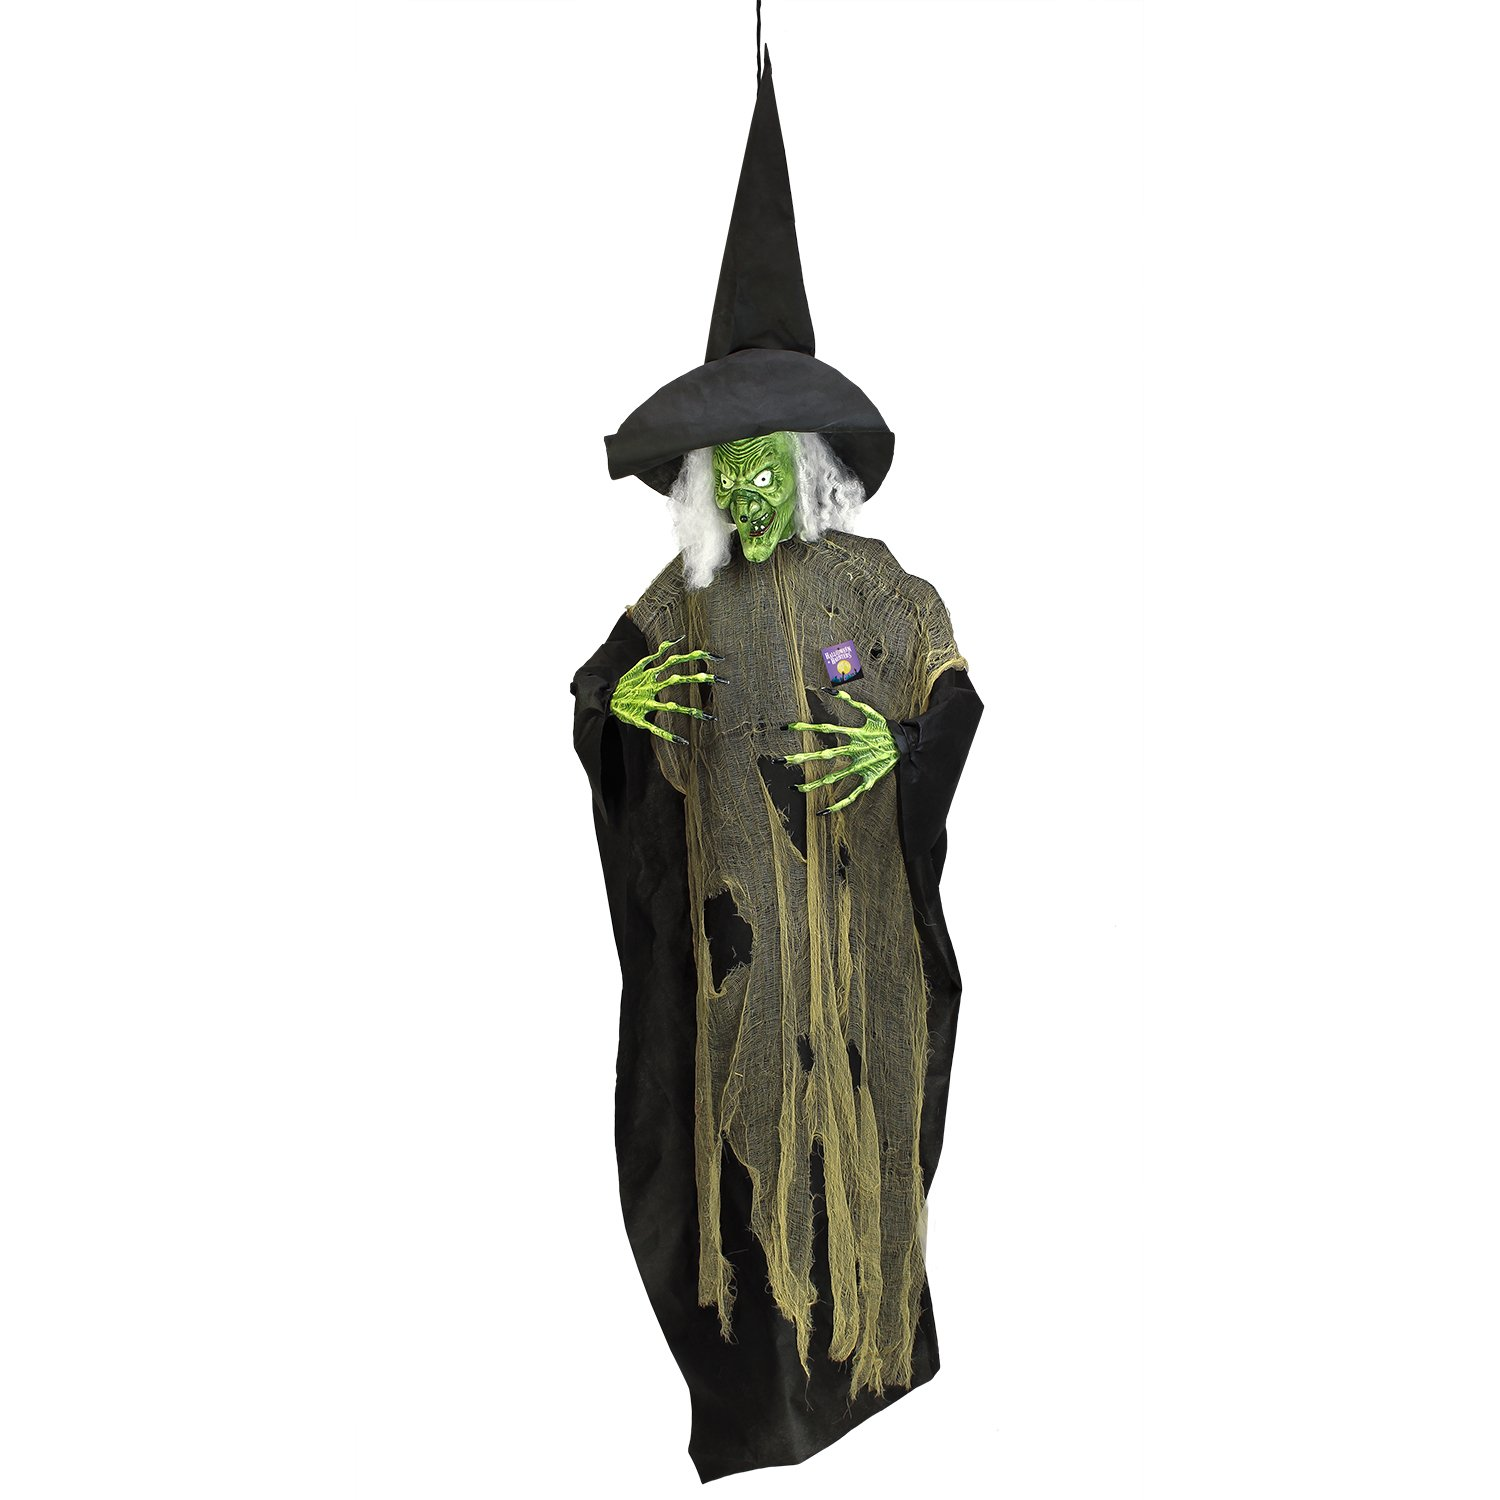 Halloween Haunters 7 foot Hanging Scary Evil Wicked Witch Prop Decoration